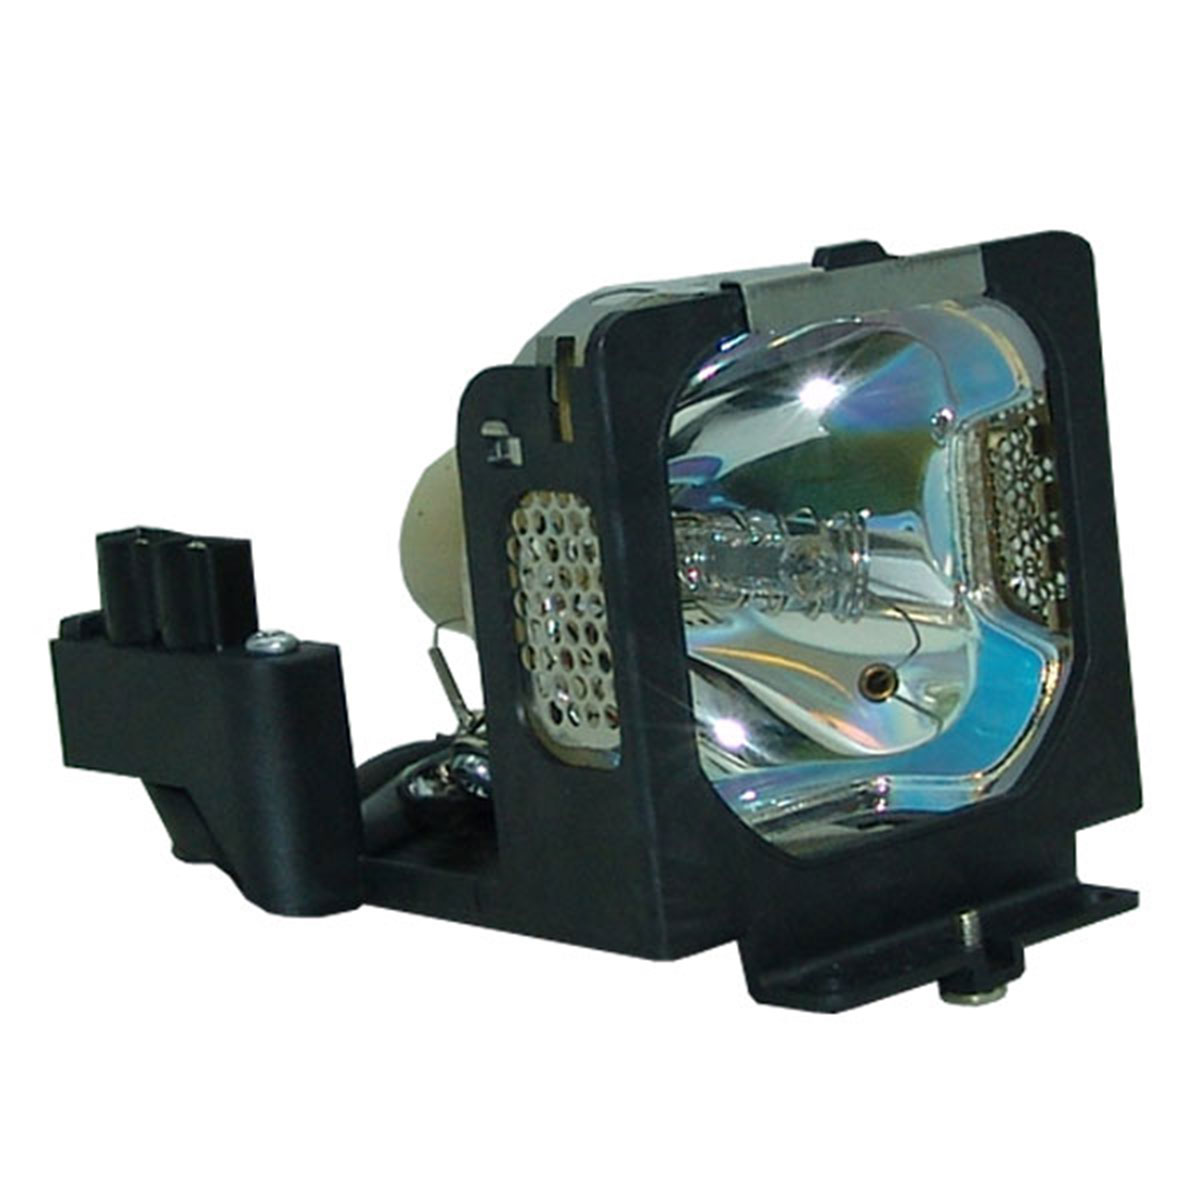 Original Philips Projector Lamp Replacement with Housing for Canon LV-7225 - image 3 of 5